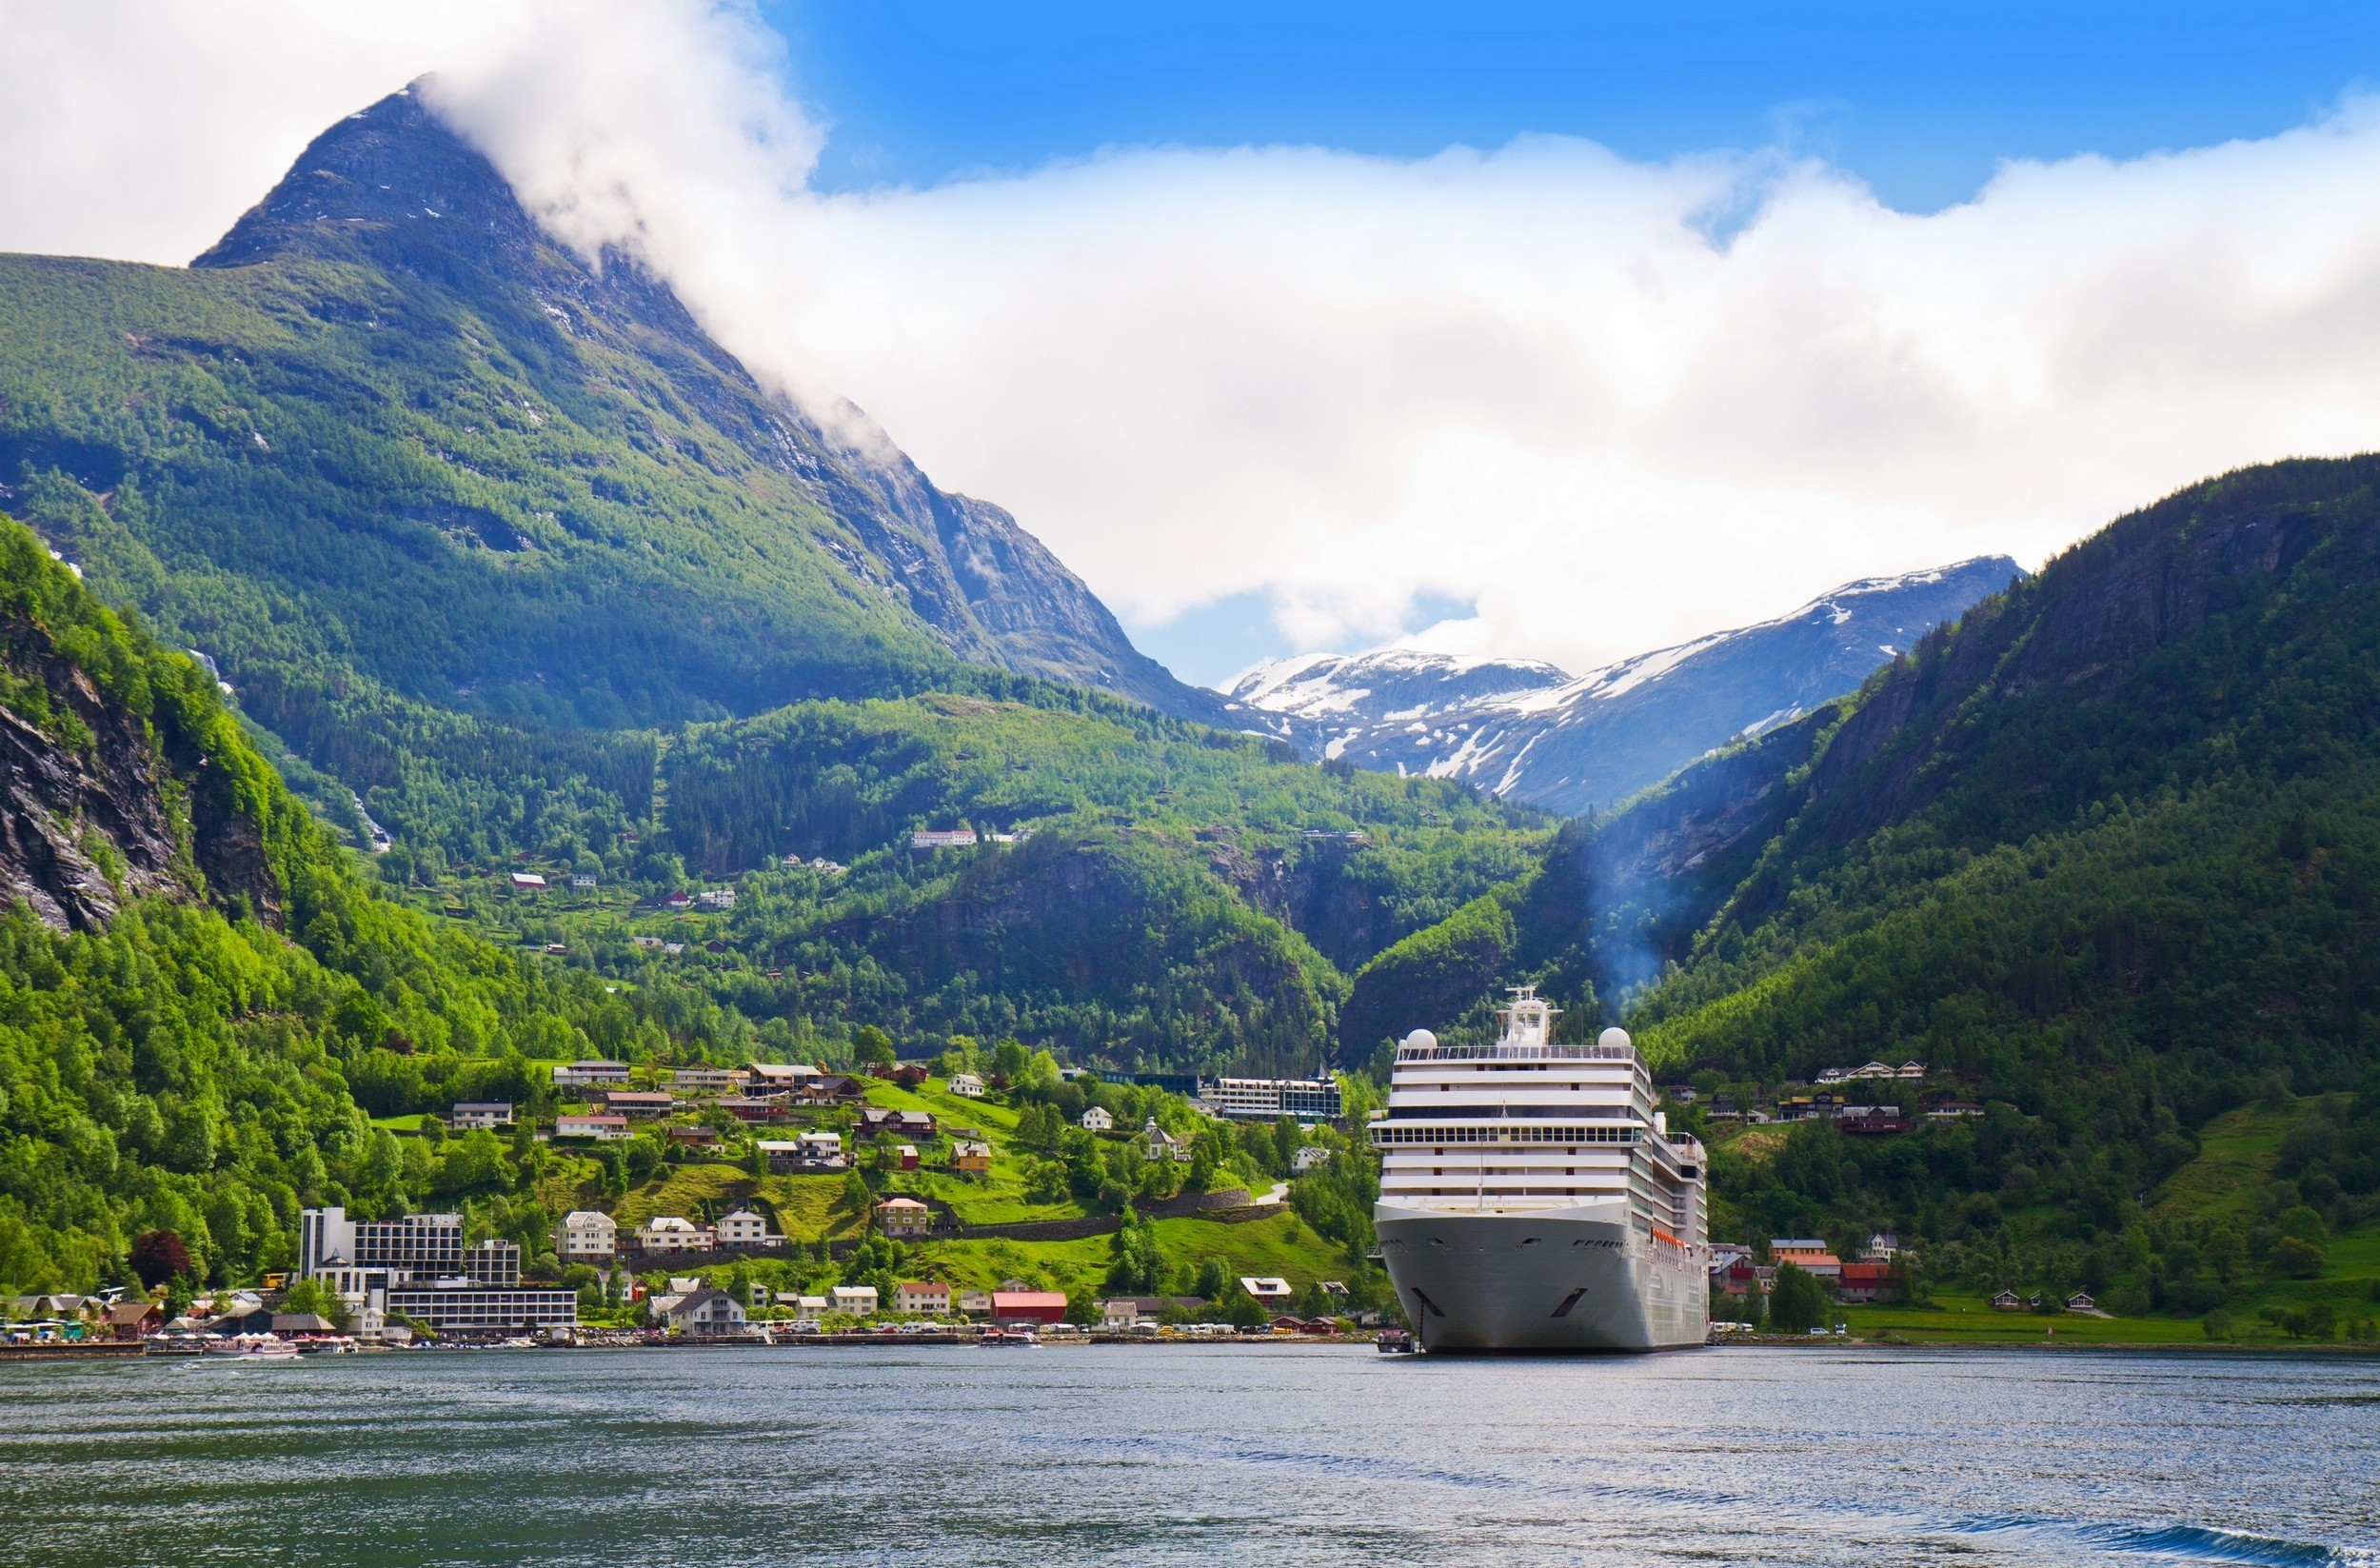 Cruise Ship Computer Wallpapers Desktop Backgrounds 2500x1647 ID 2500x1647